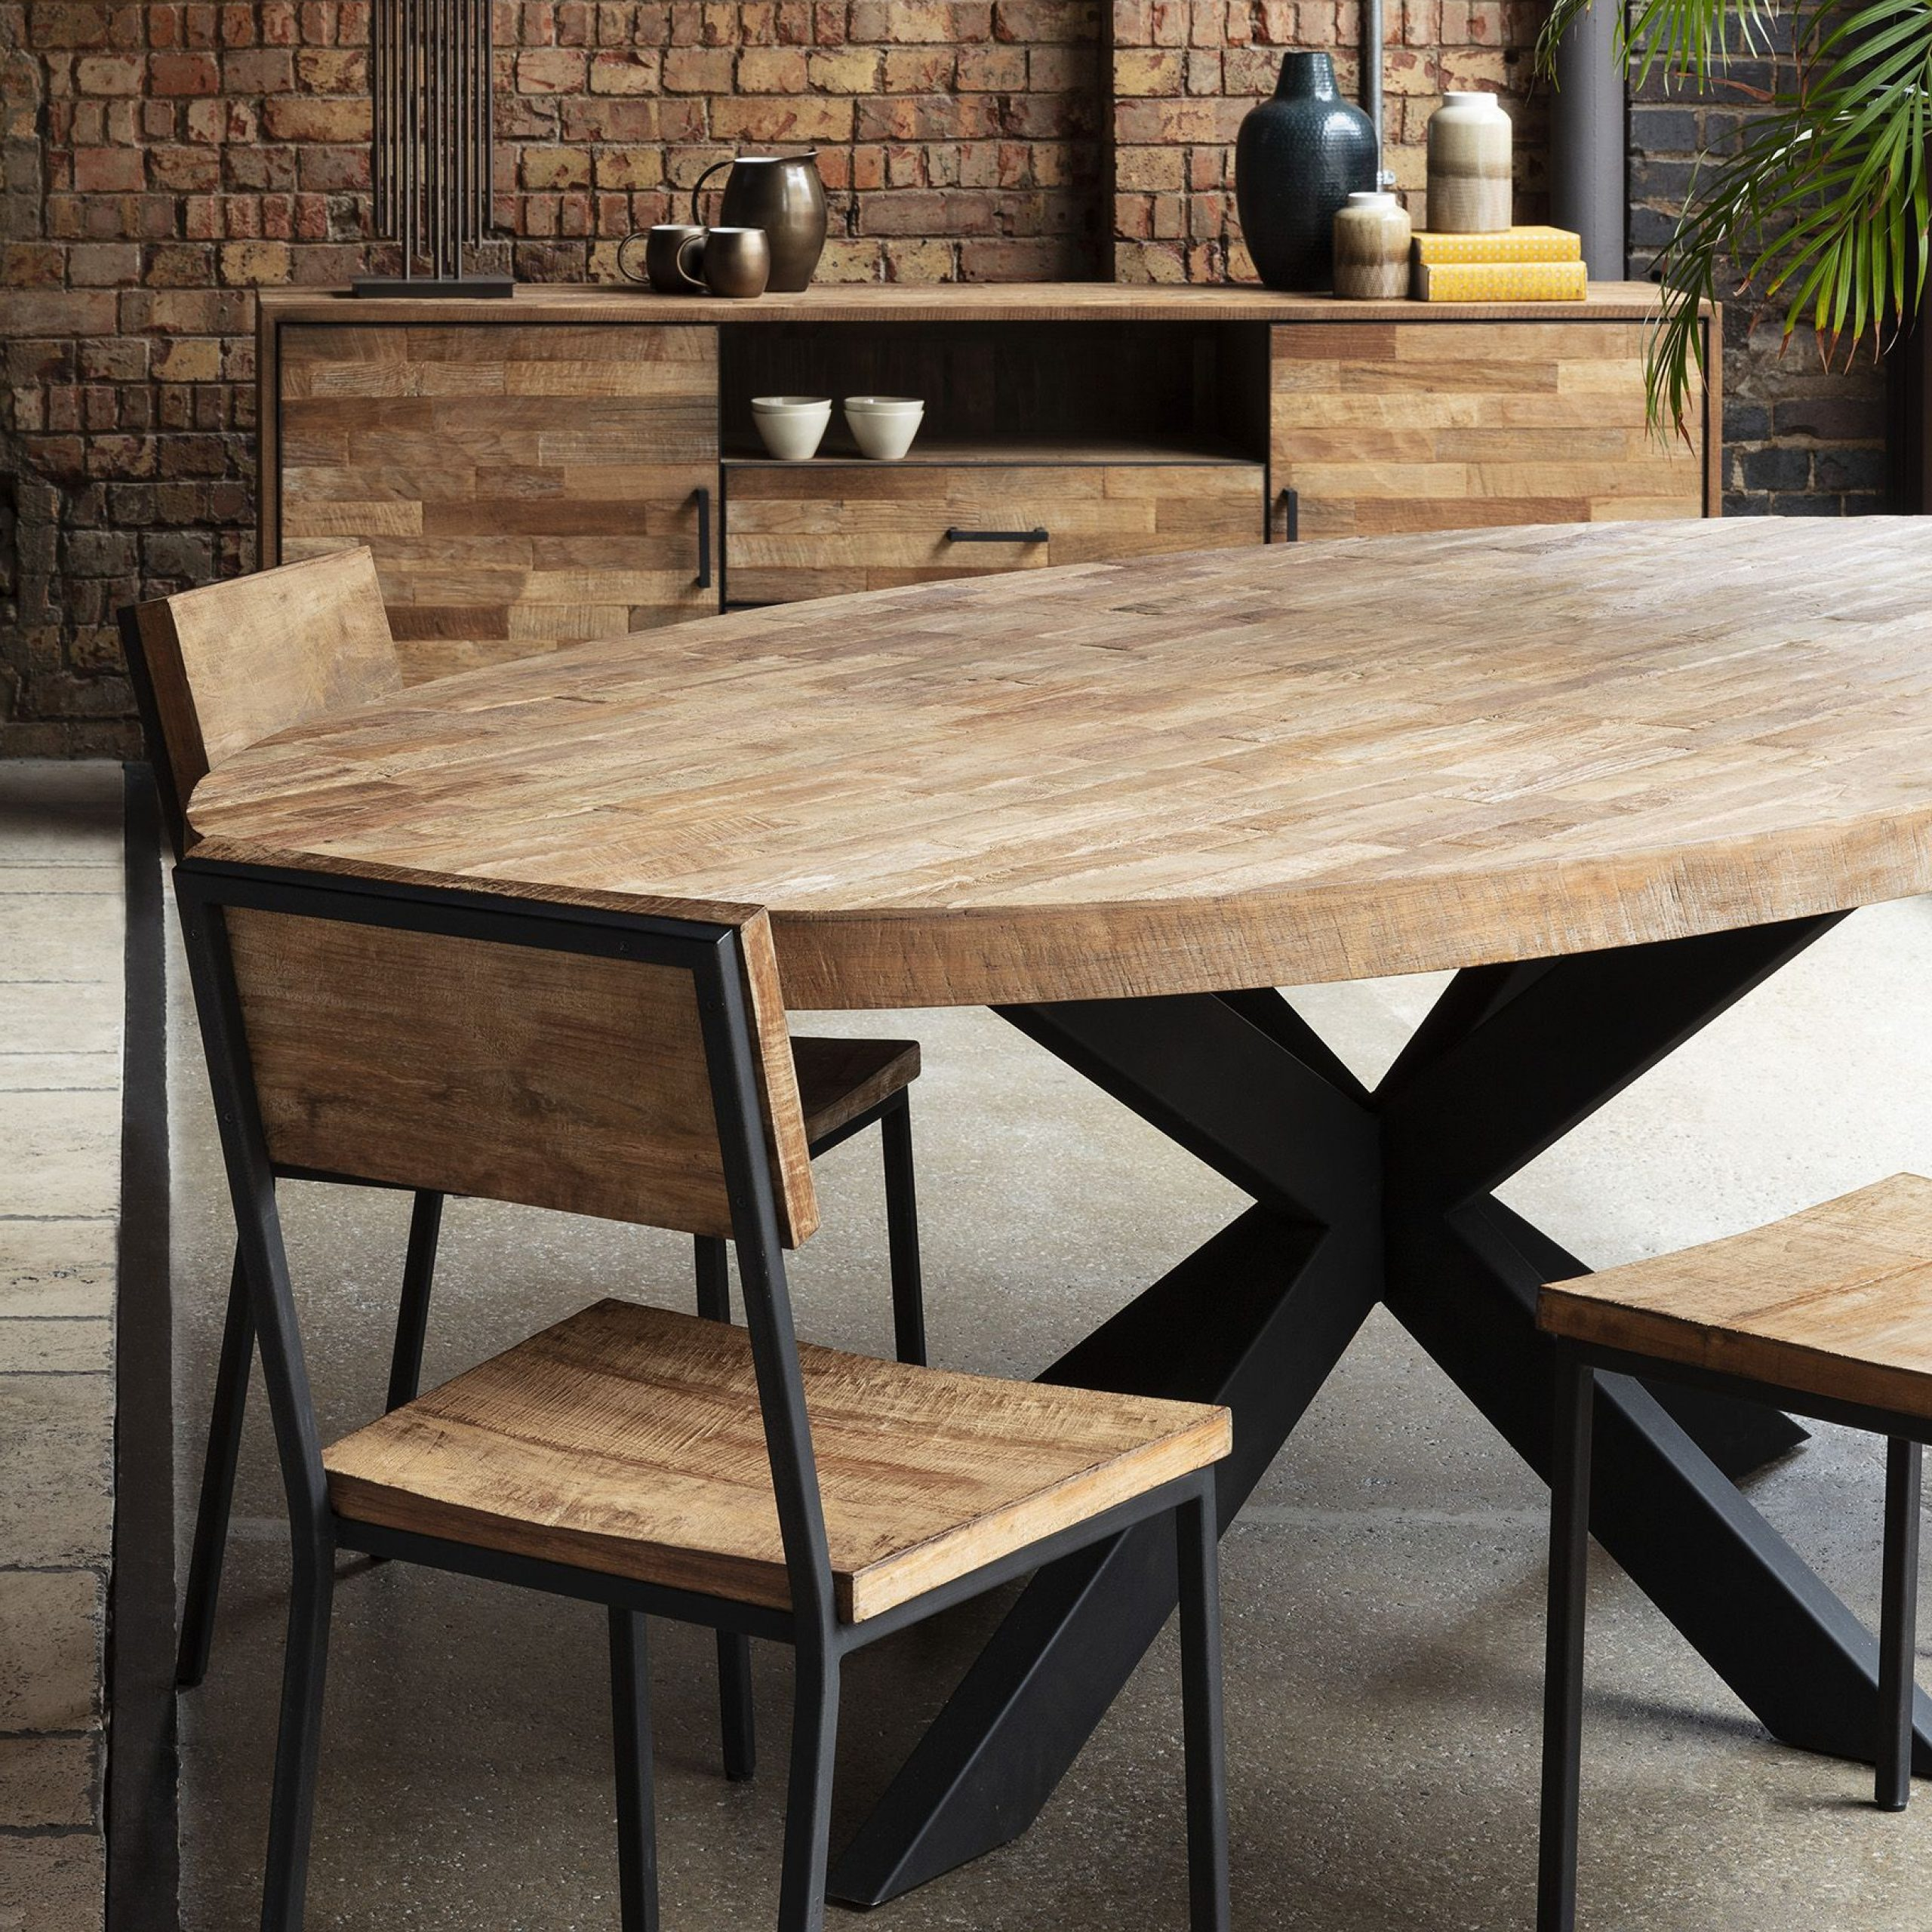 Widely Used Acacia Wood Top Dining Tables With Iron Legs On Raw Metal Within Baxter Bond Teak Oval Dining Table (View 10 of 25)